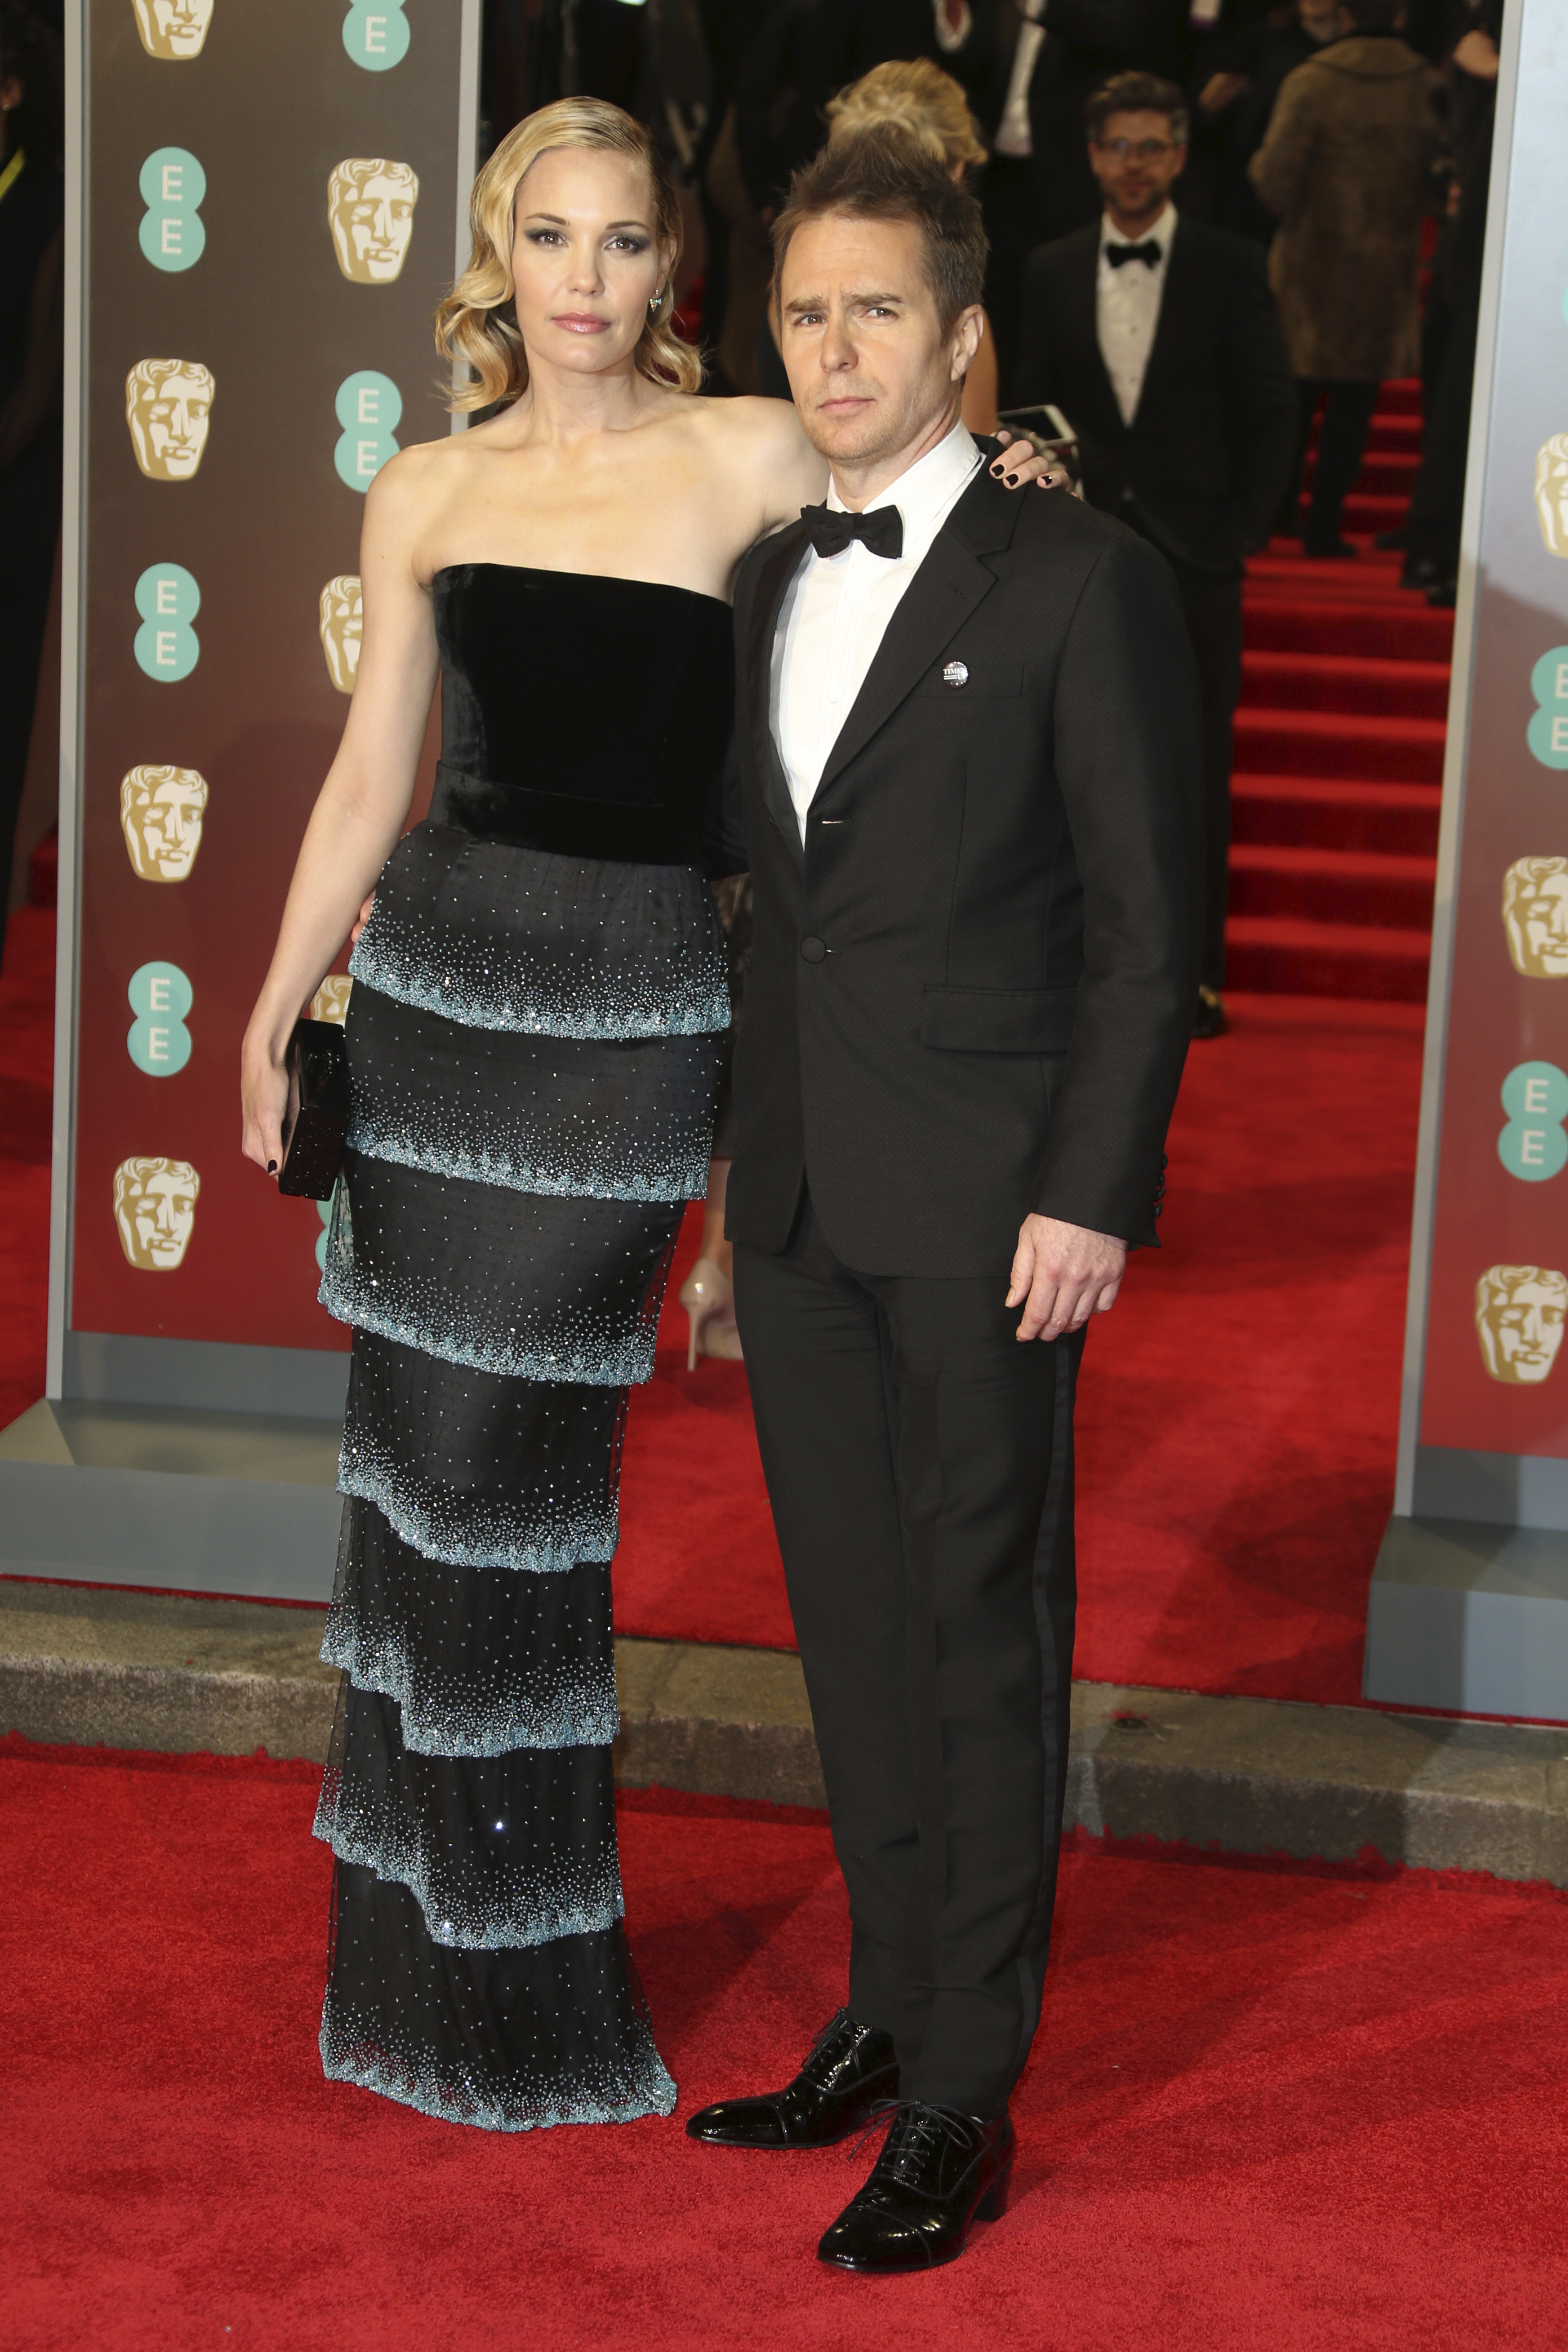 <div class='meta'><div class='origin-logo' data-origin='AP'></div><span class='caption-text' data-credit='Joel C Ryan/Invision/AP'>Actor Sam Rockwell, right, and Leslie Bibb pose for photographers upon arrival at the BAFTA 2018 Awards in London, Sunday, Feb. 18, 2018.</span></div>